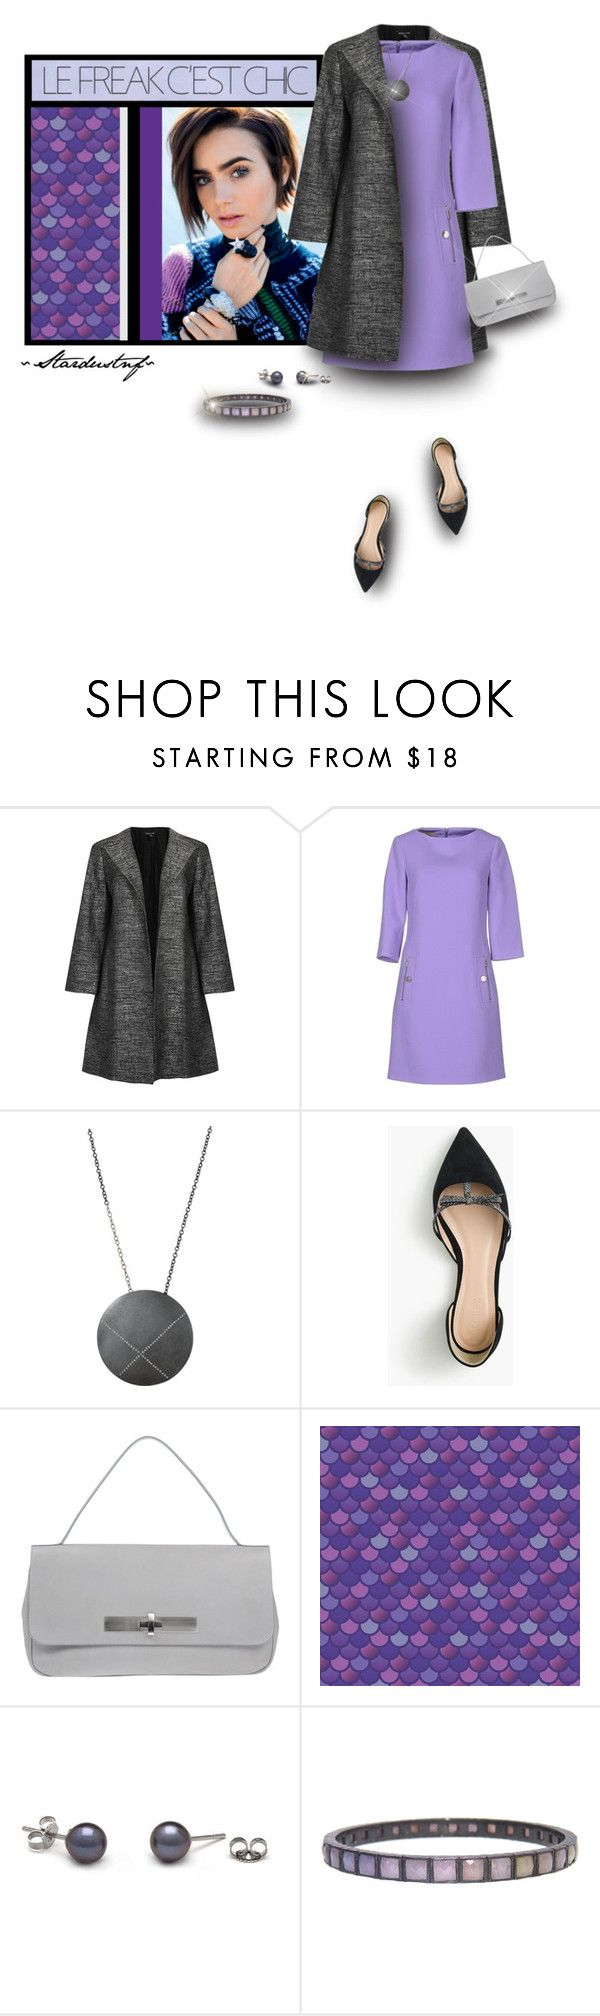 """""""Le Freak C'est Chic (Lilac, Grey & Black)"""" by stardustnf ❤ liked on Polyvore featuring Trilogy, Eileen Fisher, Michael Kors, Todd Reed, J.Crew, Avril Gau, Nak Armstrong, michaelkors, lilac and fearlesscrew"""